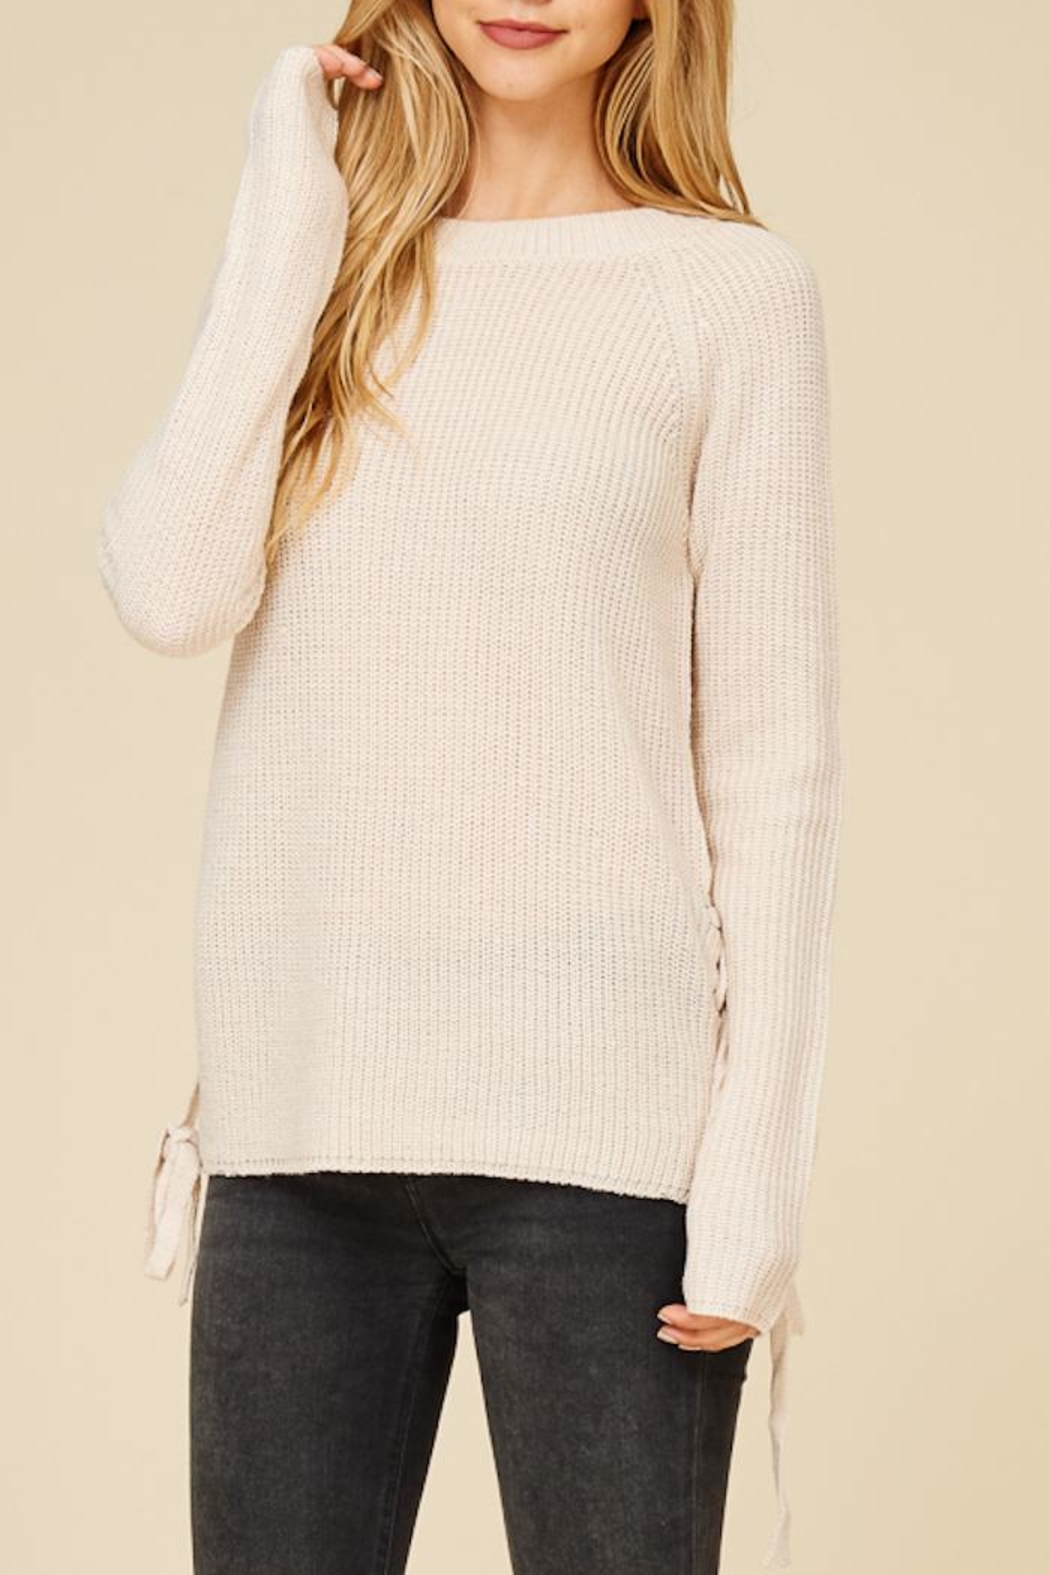 Staccato Lace Me Up Sweater - Main Image